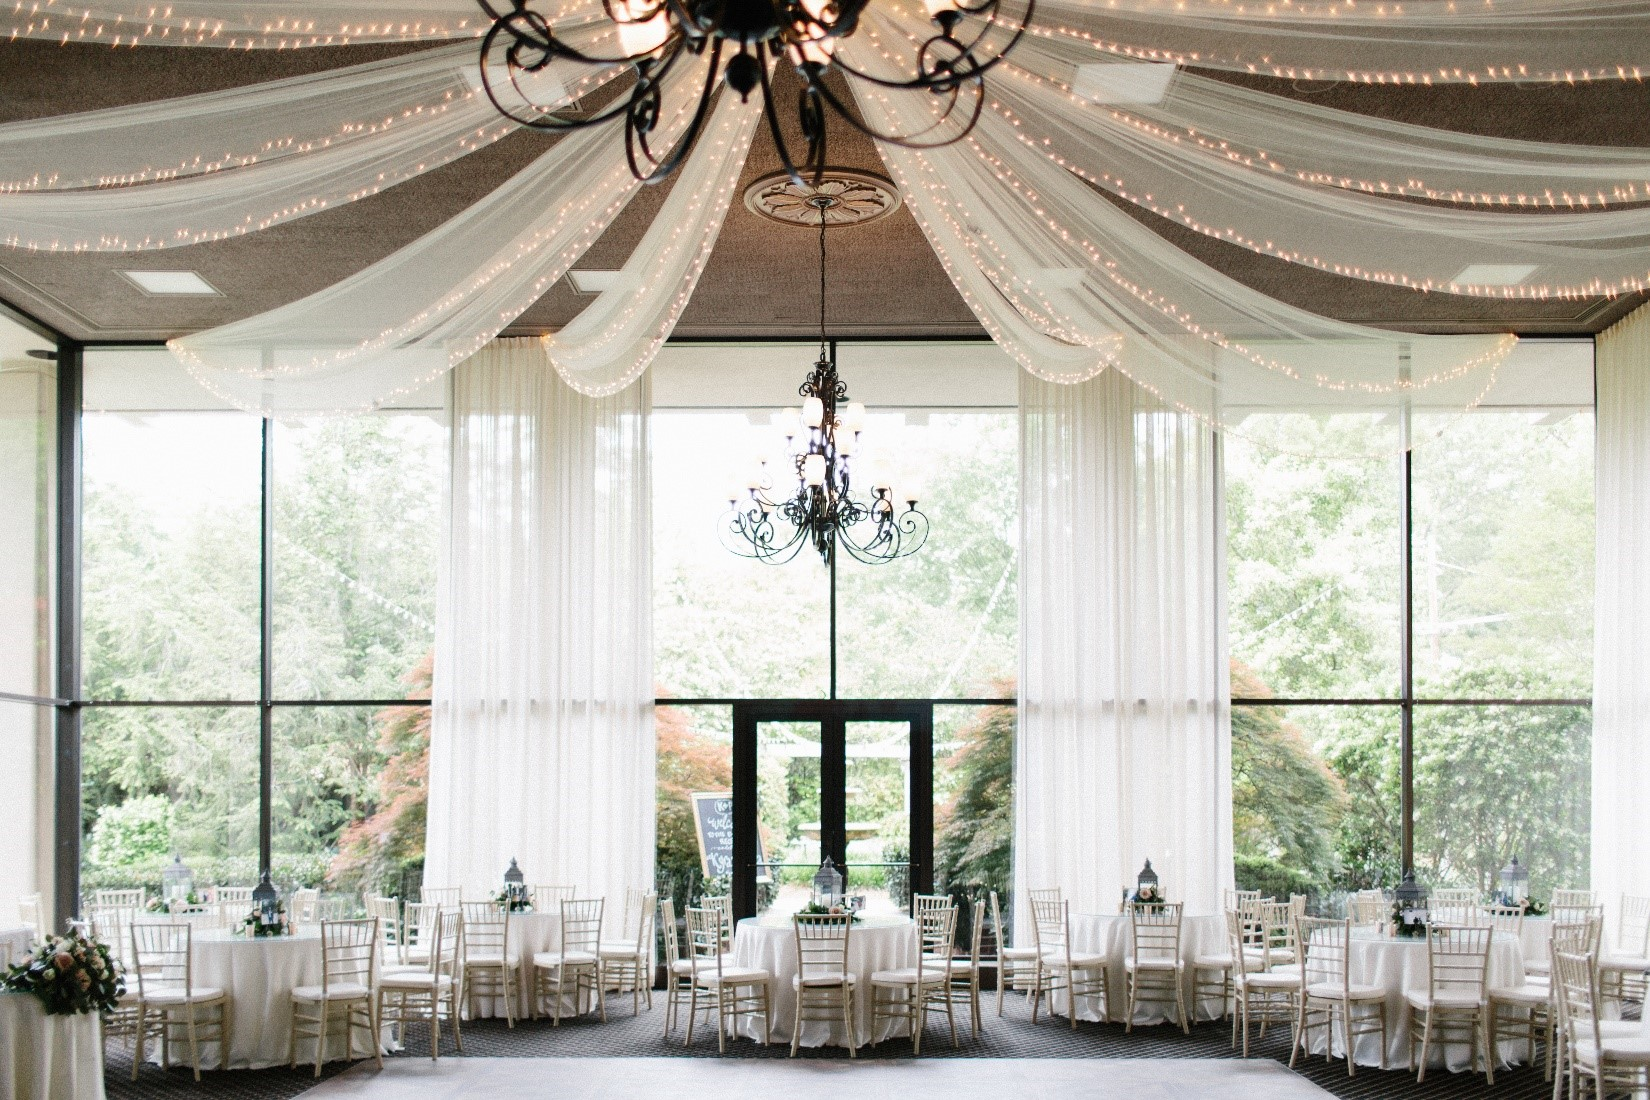 Neoclassical Design - Two-story glass ballroomBalcony overlooking the ballroomTwo courtyards